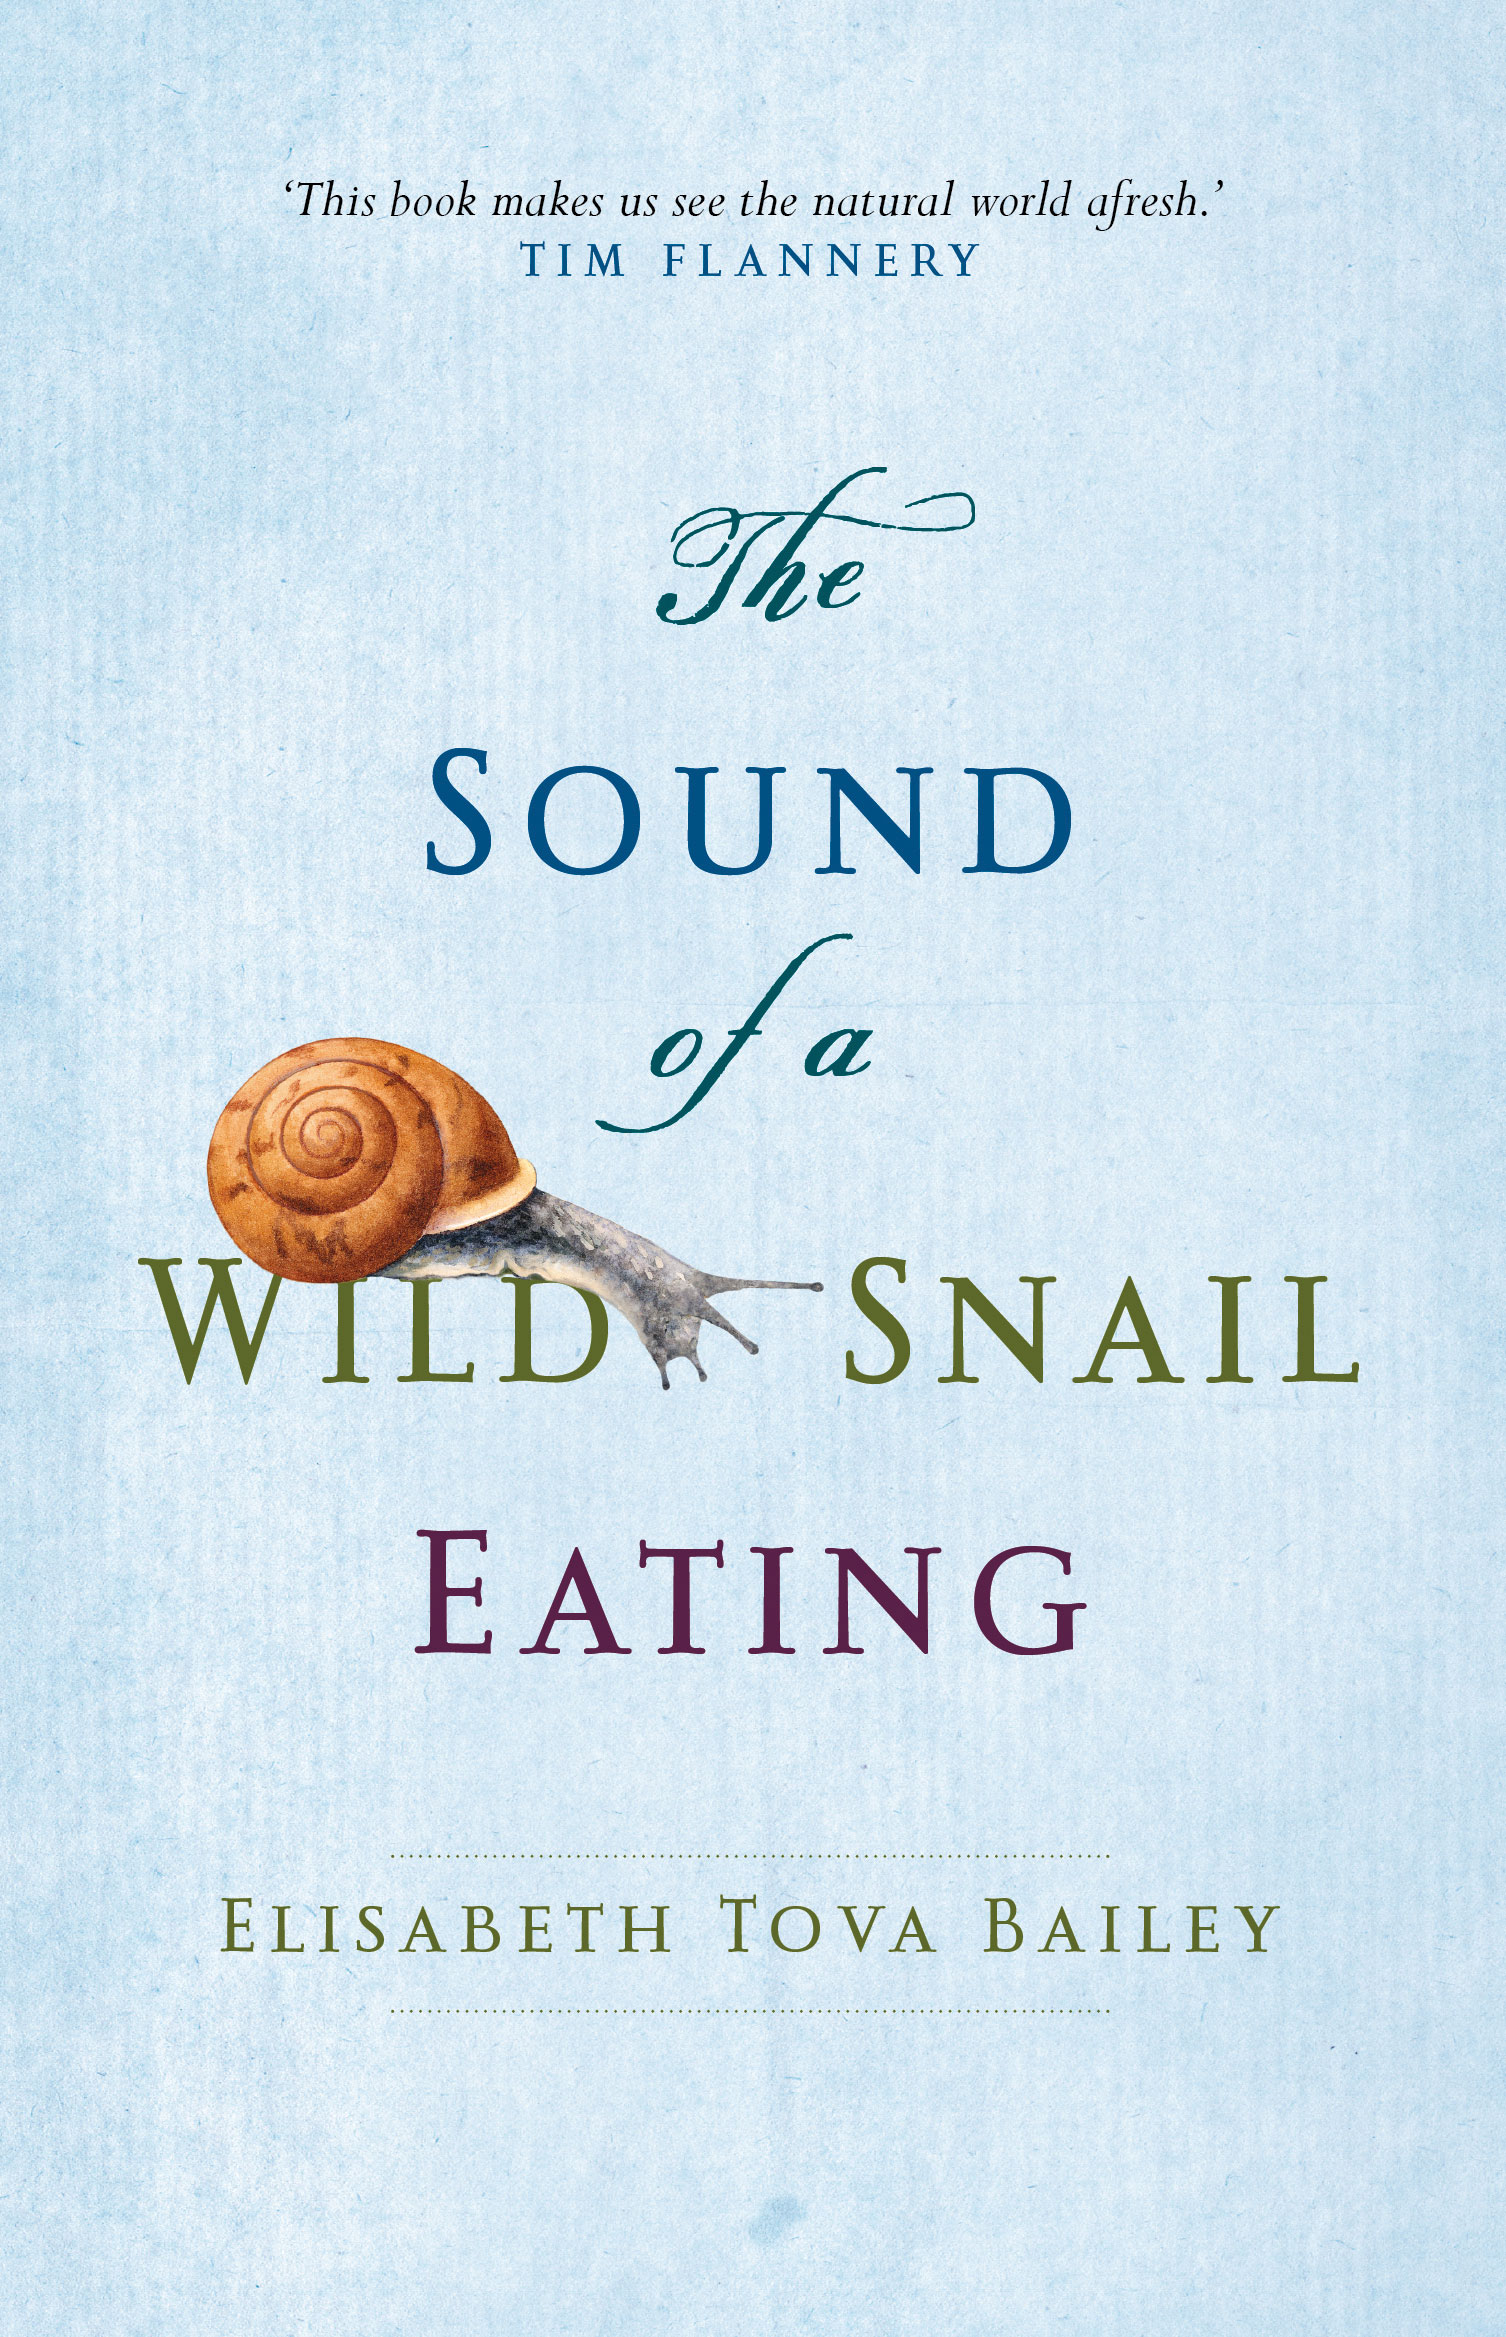 Text Publishing — The Sound of a Wild Snail Eating, book by Elisabeth